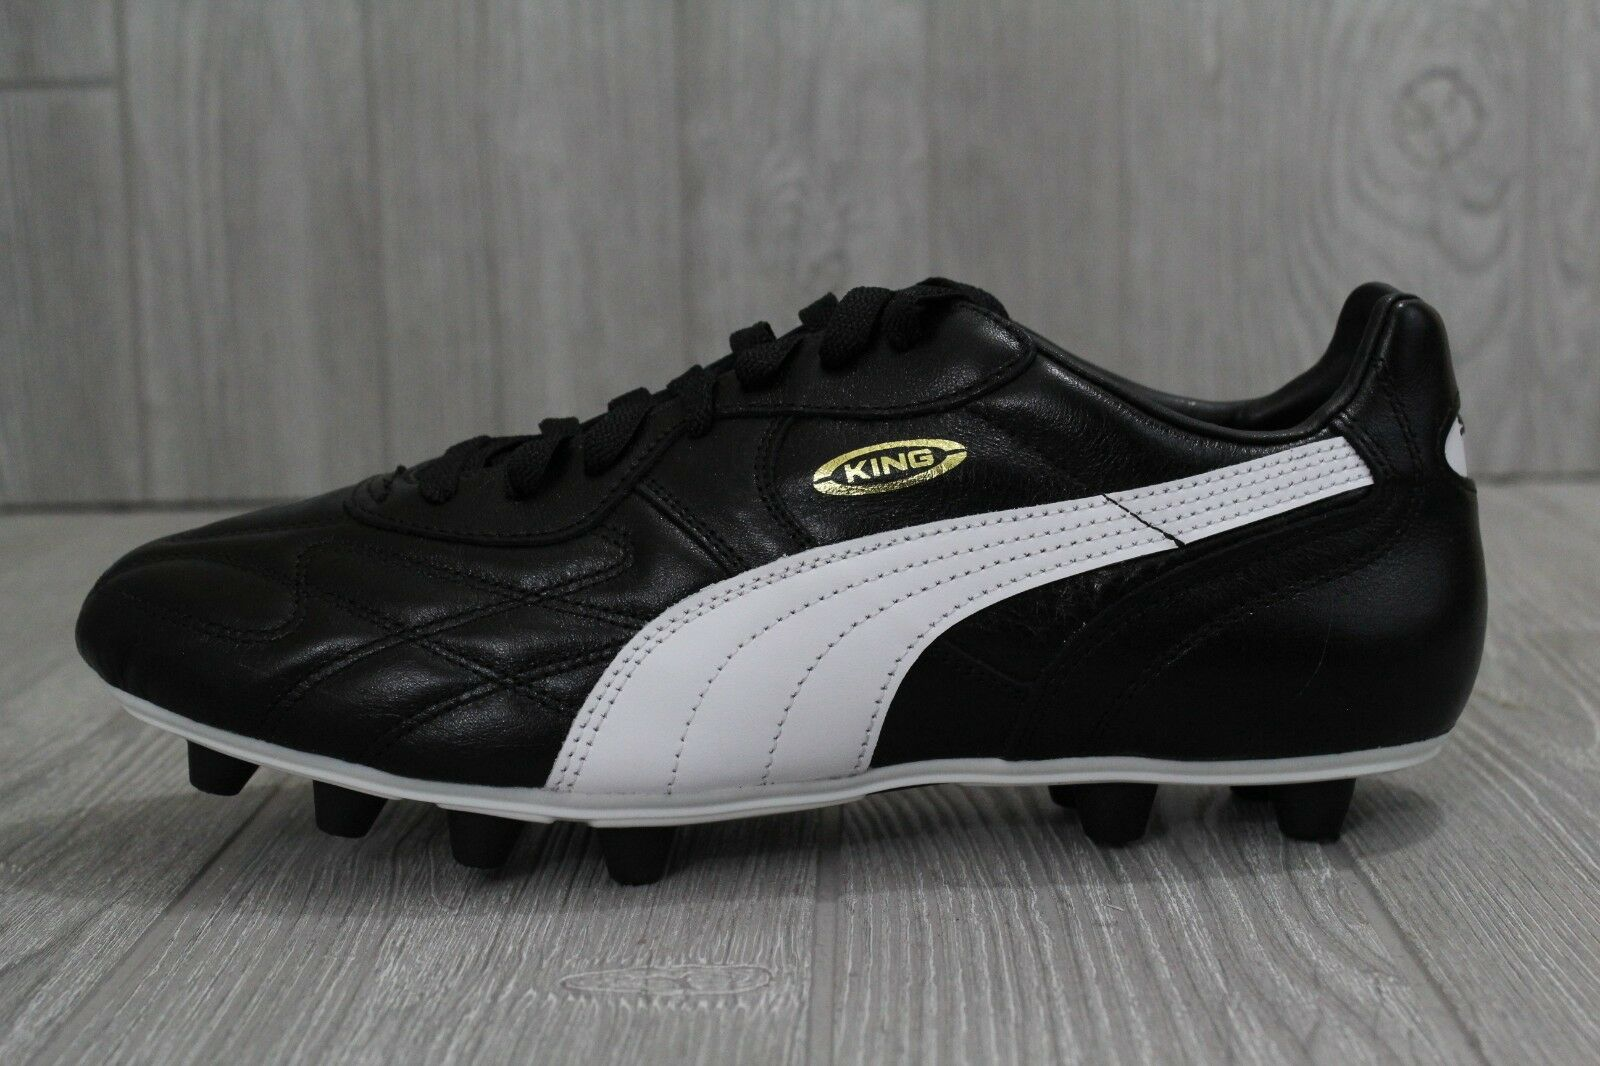 42 PUMA King Top DI FG Leather Soccer Cleats Black White 8-14 170115 01